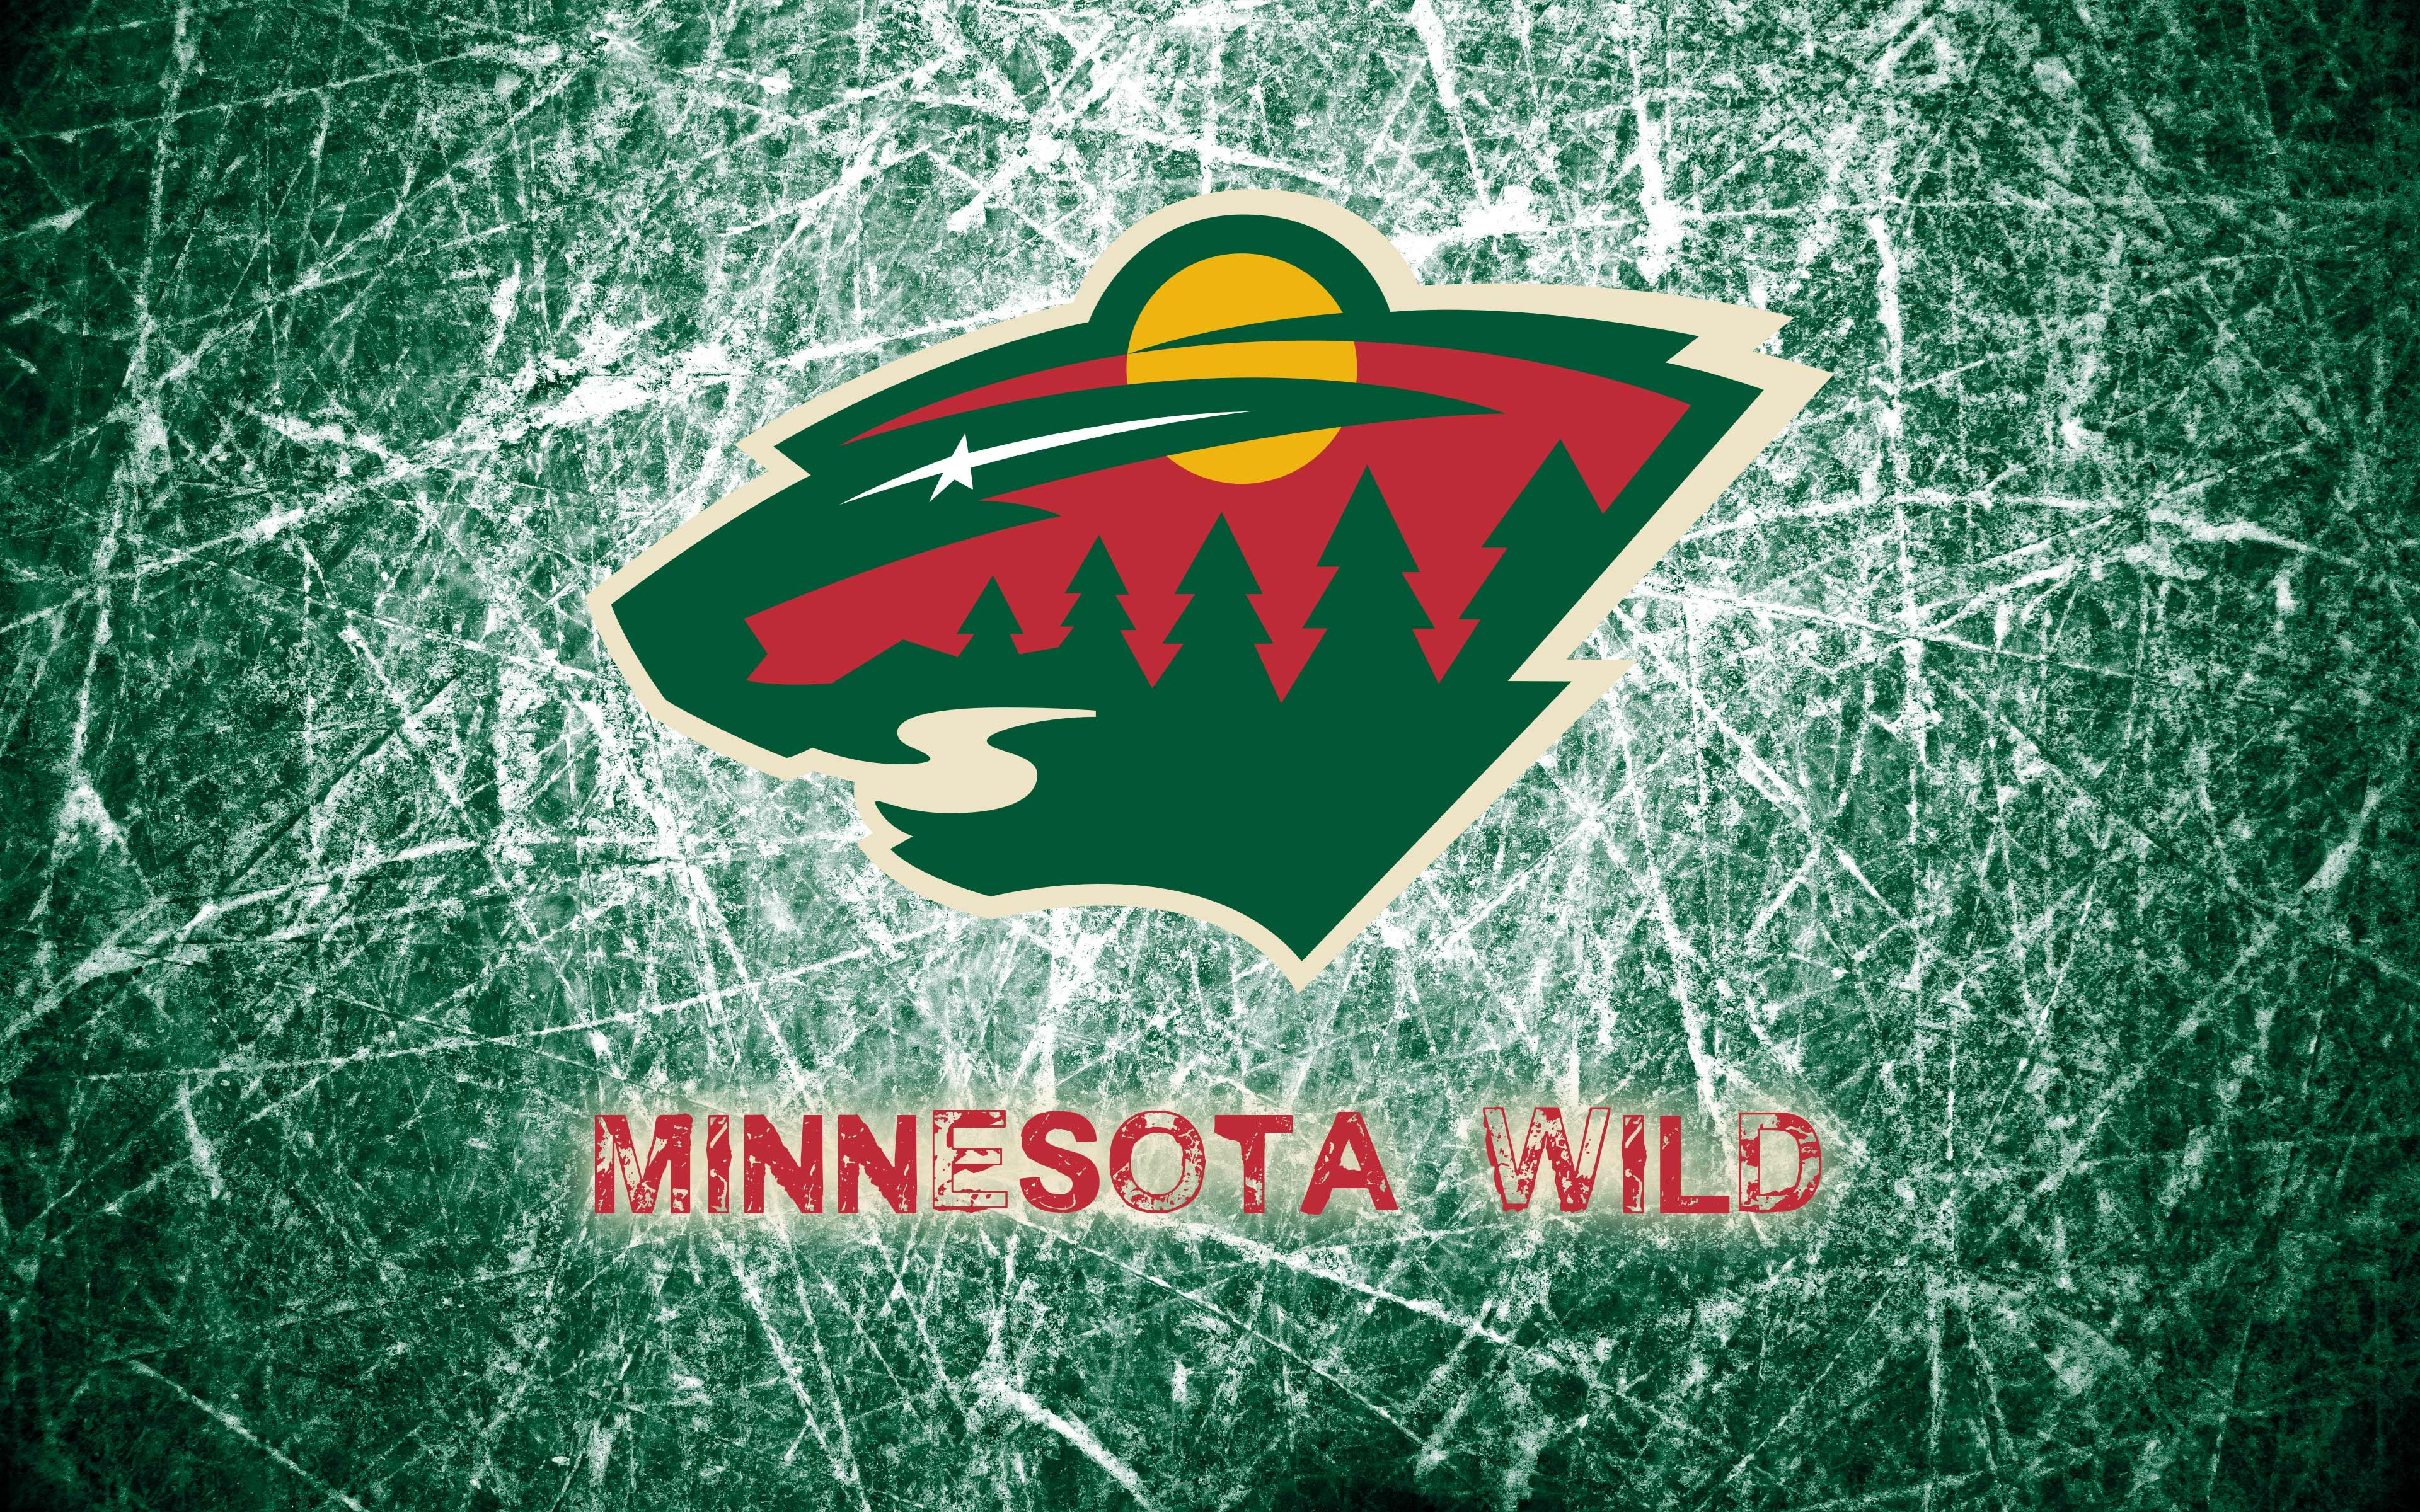 Mn wild google search signs pinterest search results for minnesota wild wallpaper adorable wallpapers publicscrutiny Choice Image